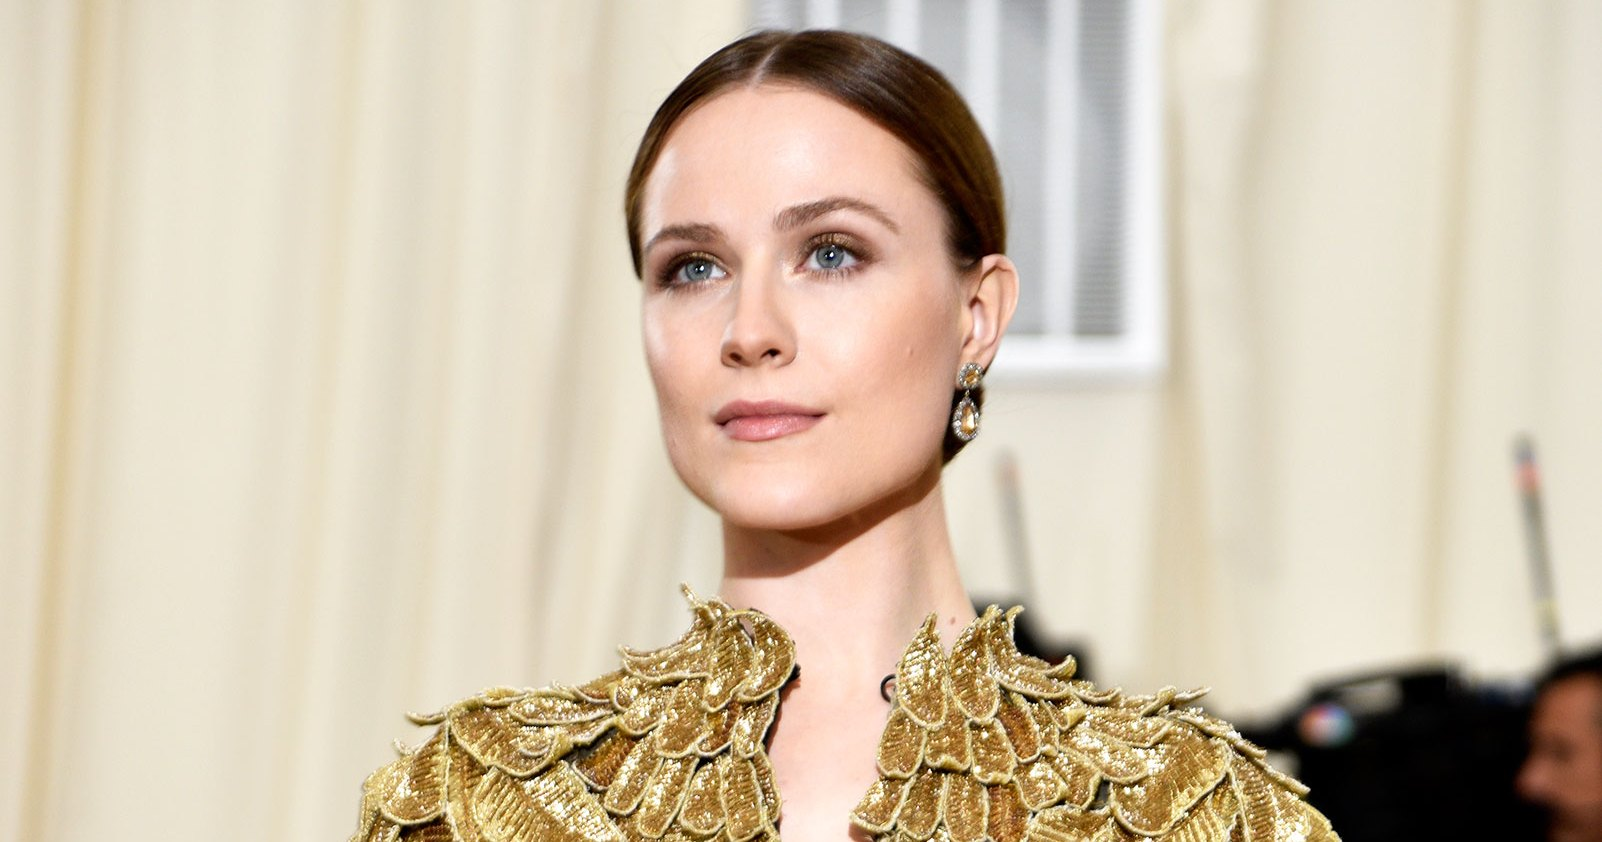 Evan Rachel Wood on Her Psychiatric Hospital Stay After Suicide Attempt: 'I Have Absolutely No Shame'